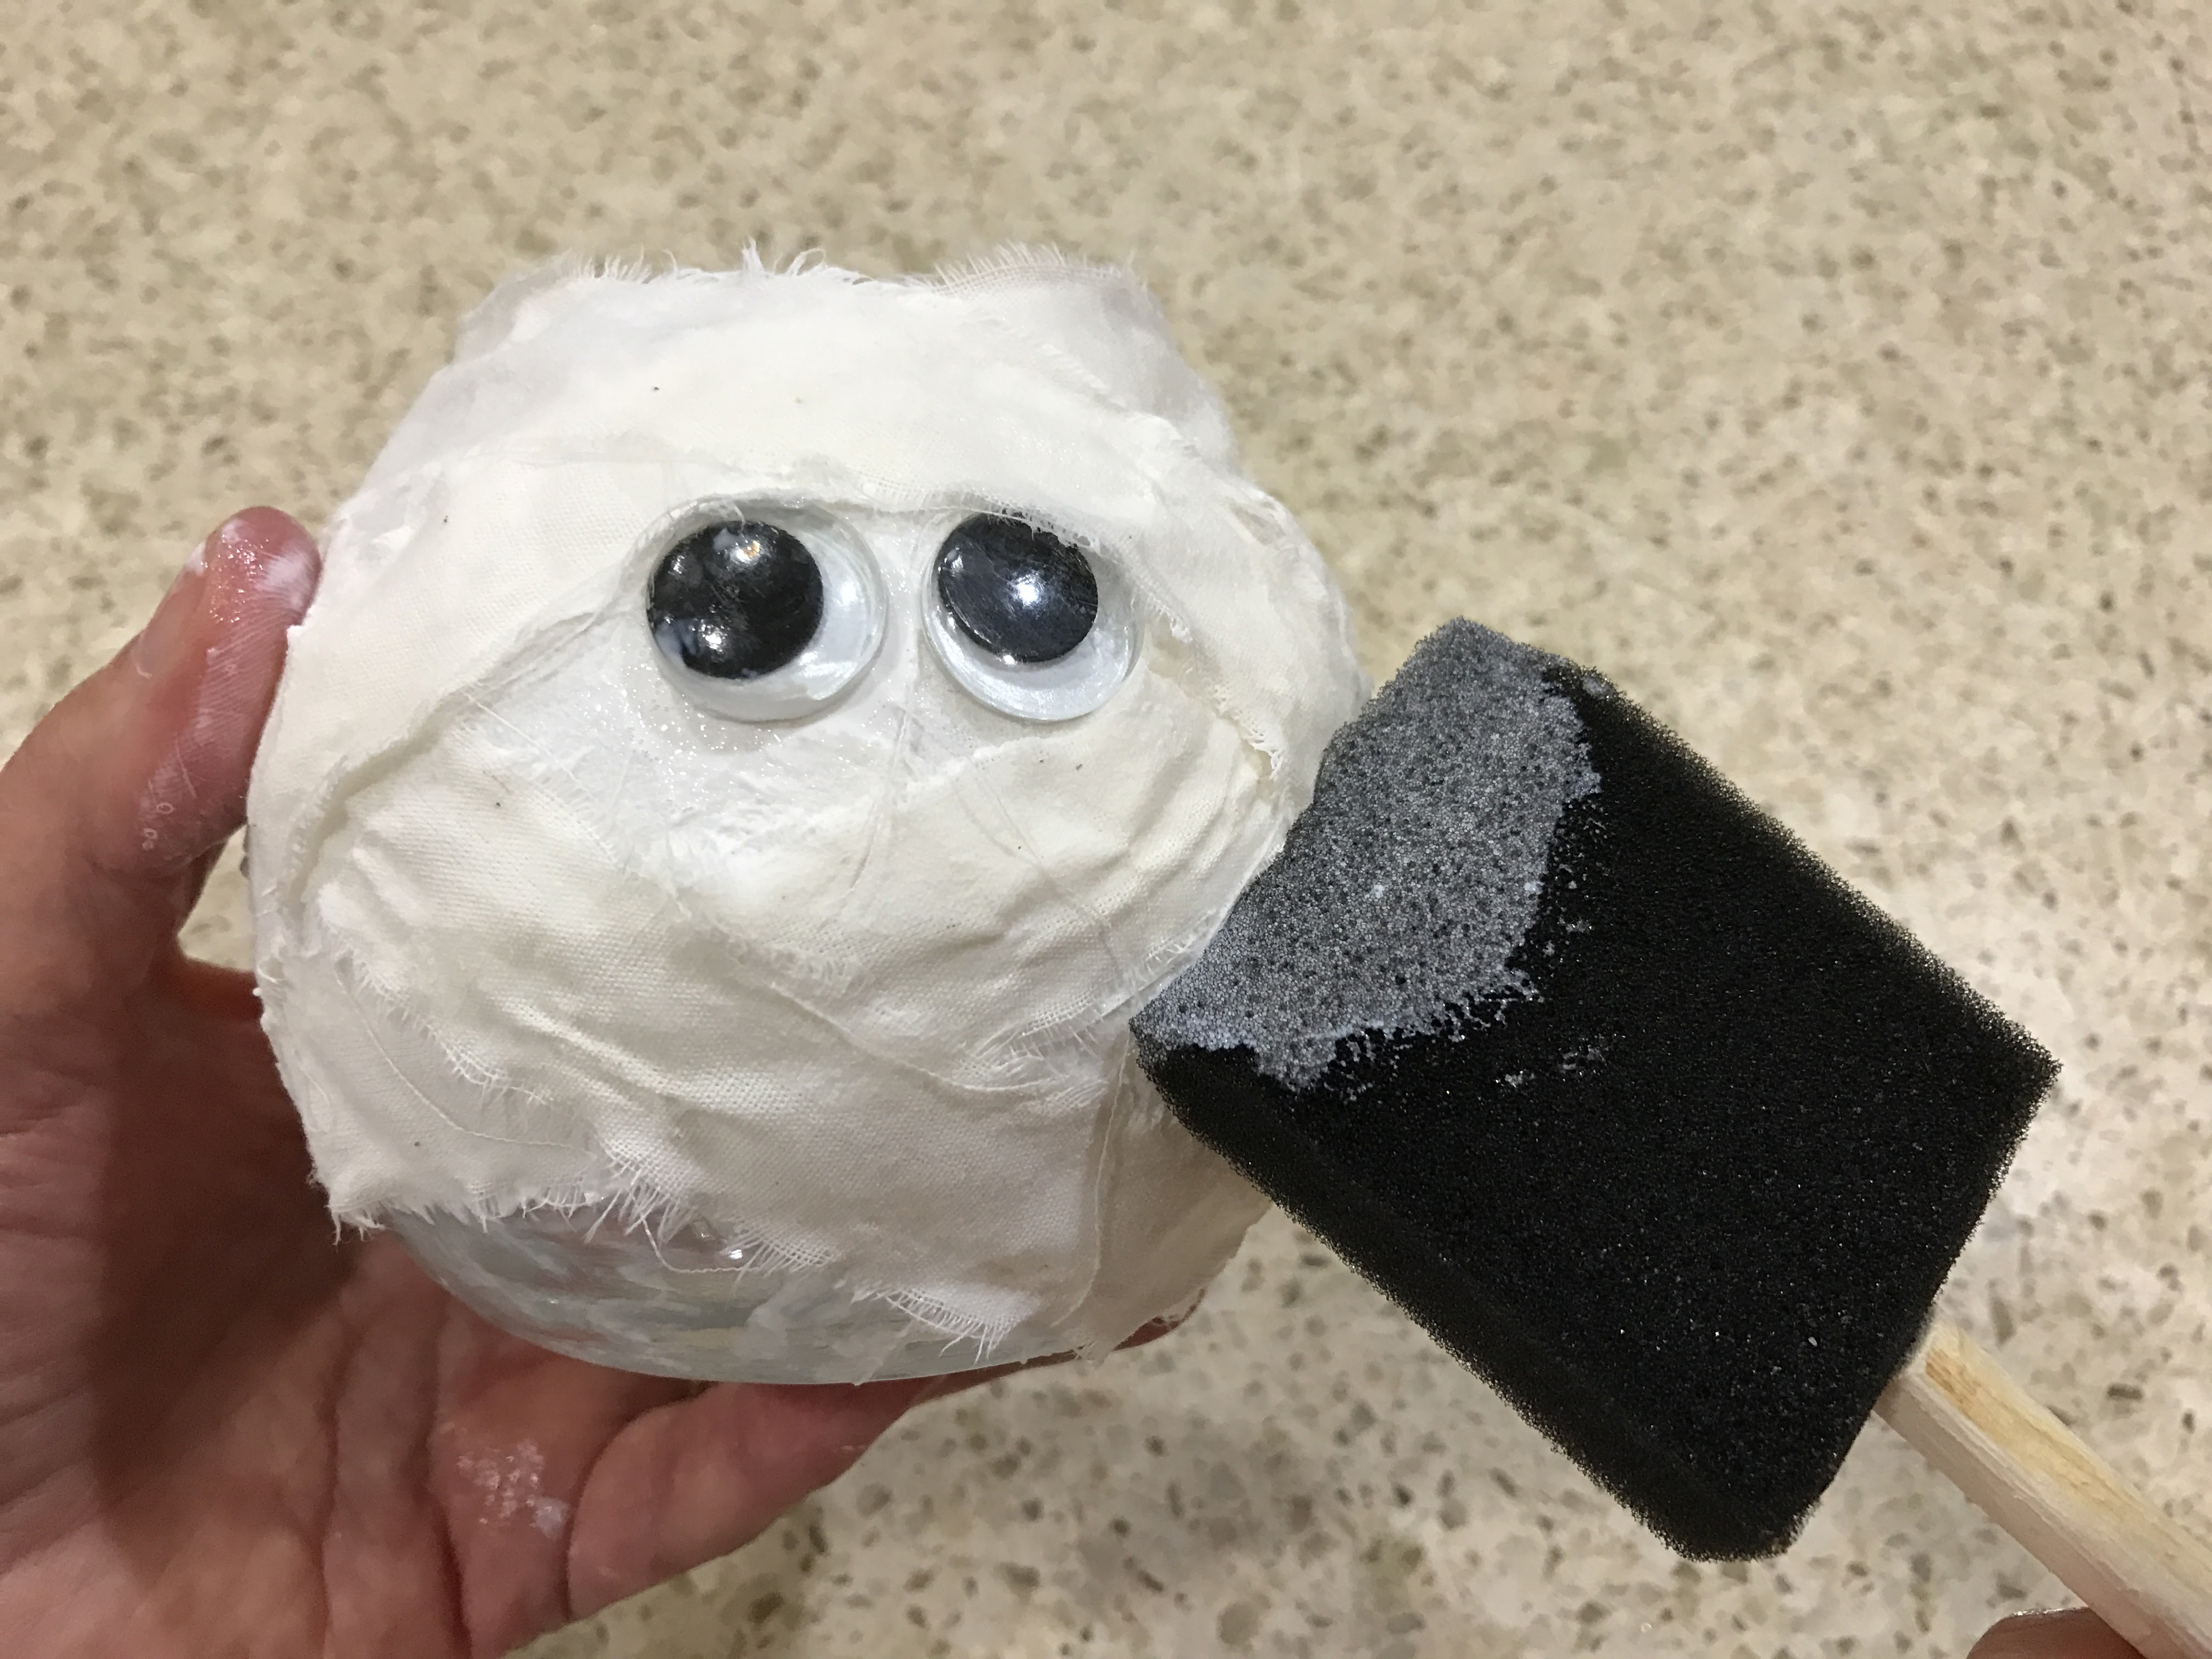 This mummy craft is super easy to make. Just Mod Podge and scrap material and googly eyes.